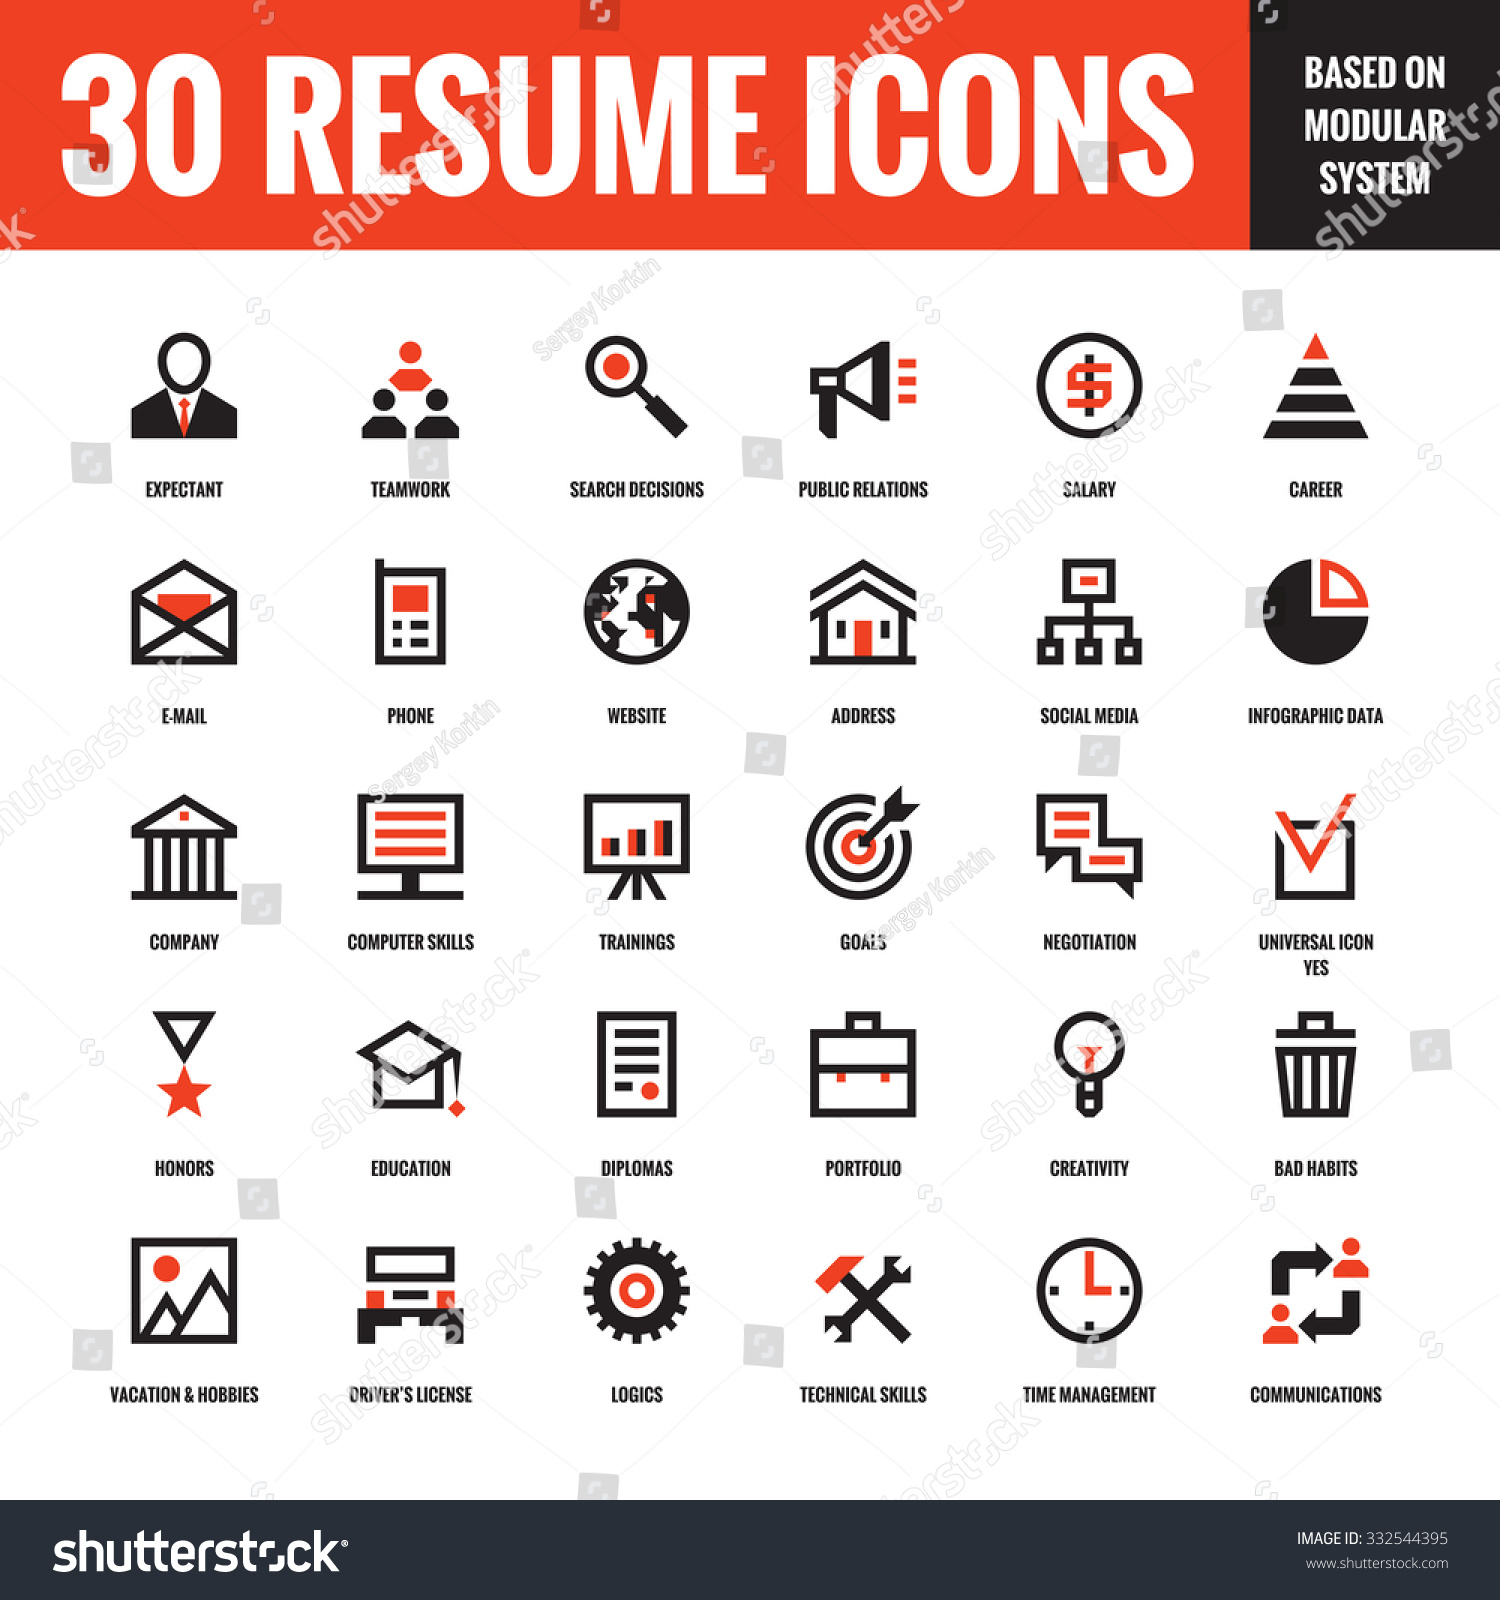 30 resume creative vector icons based on modular system